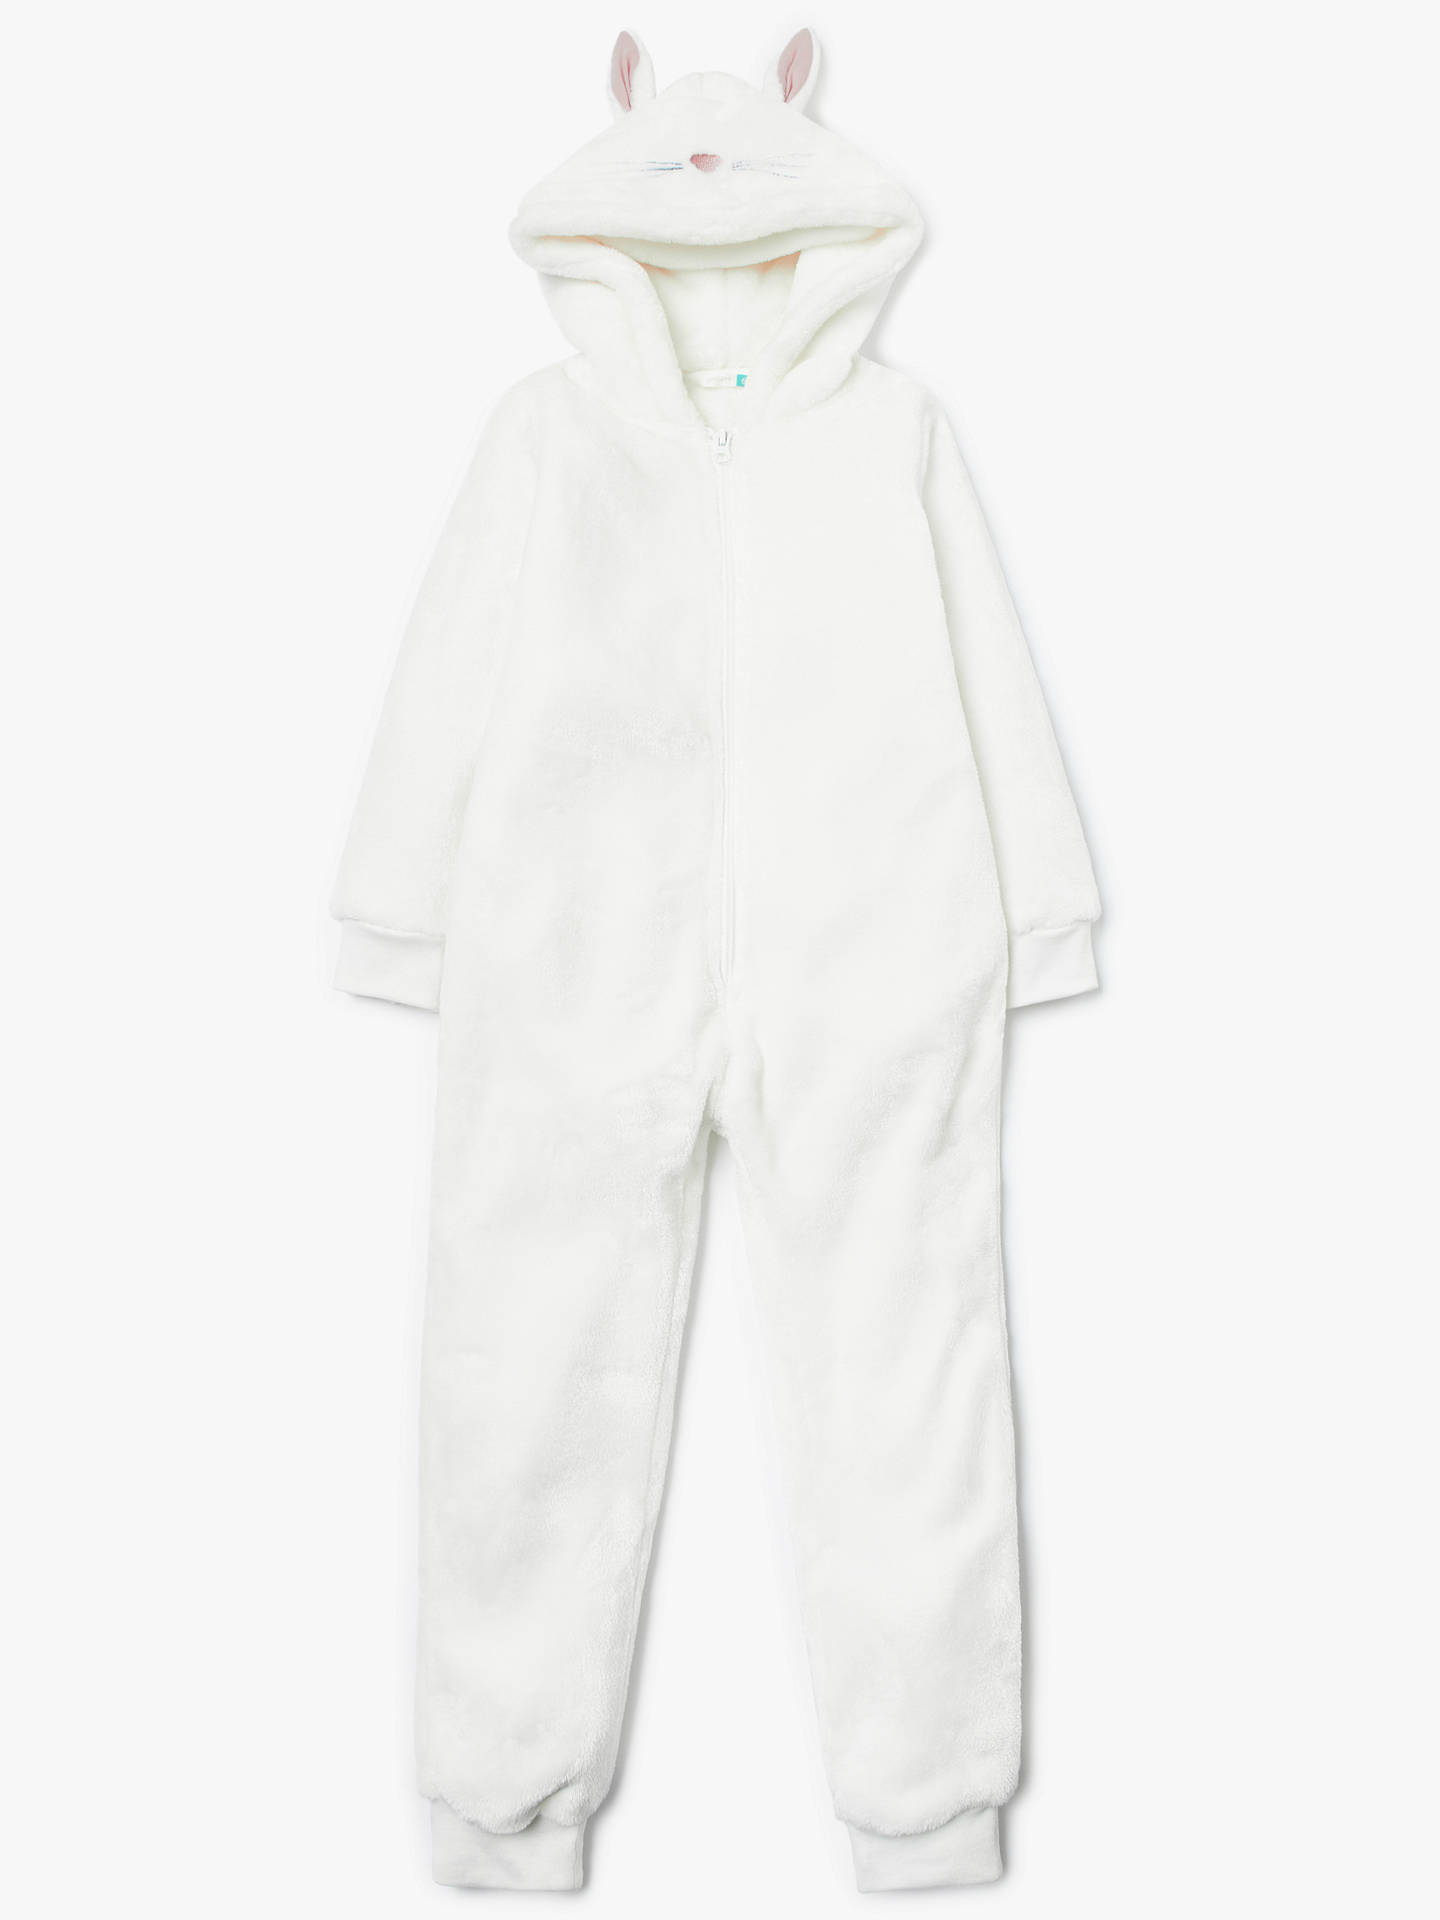 Buy John Lewis & Partners Girls' Bunny Fleece Onesie, White, 4 years Online at johnlewis.com